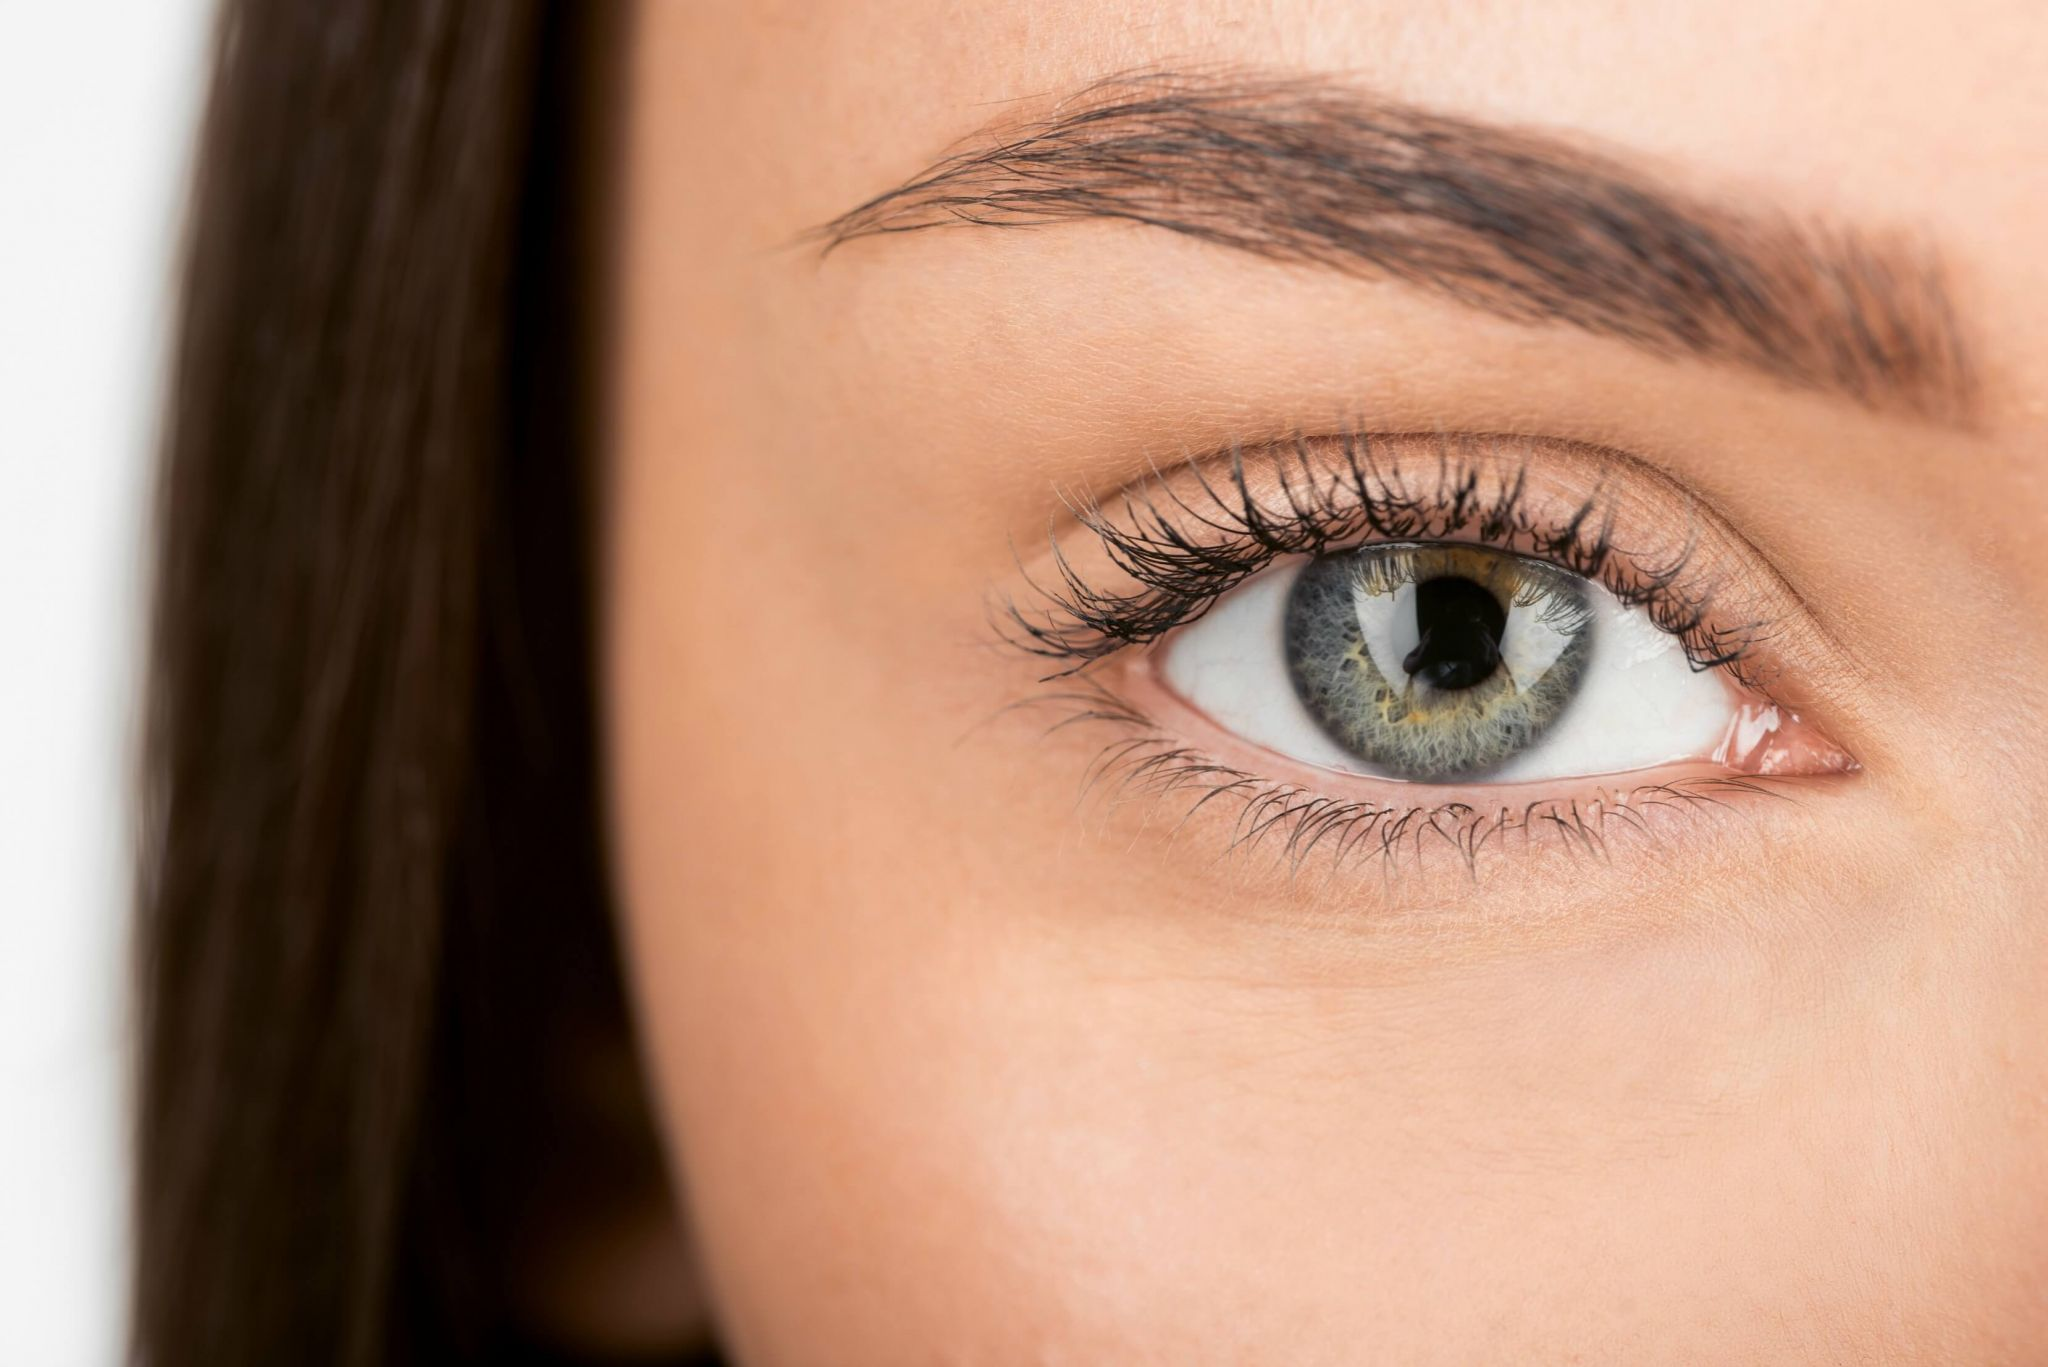 Collyre Bleu eyedrops - close up of woman's eyes